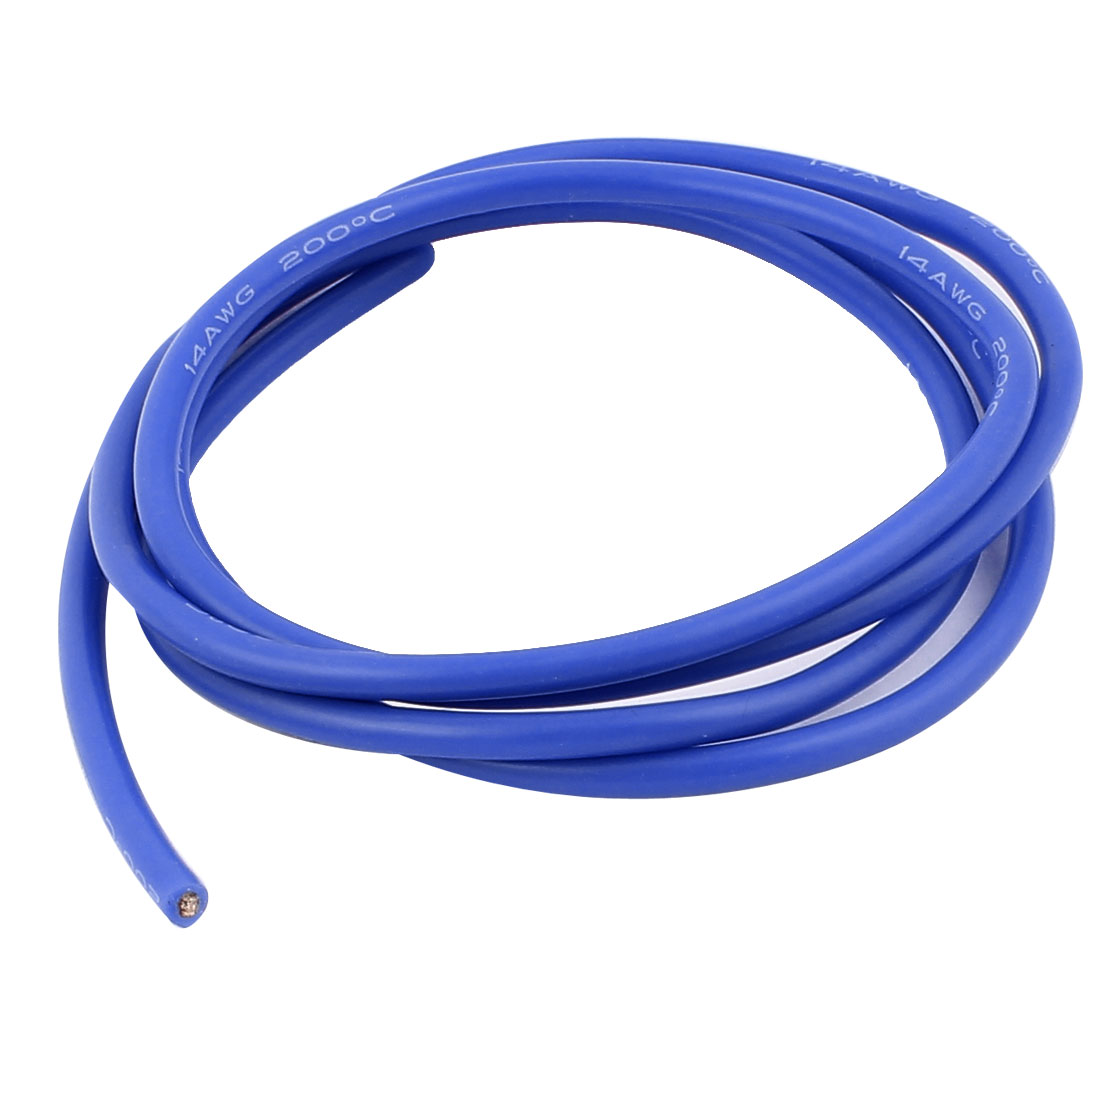 1M 14AWG Electric Copper Core Flexible Silicone Wire Cable Blue